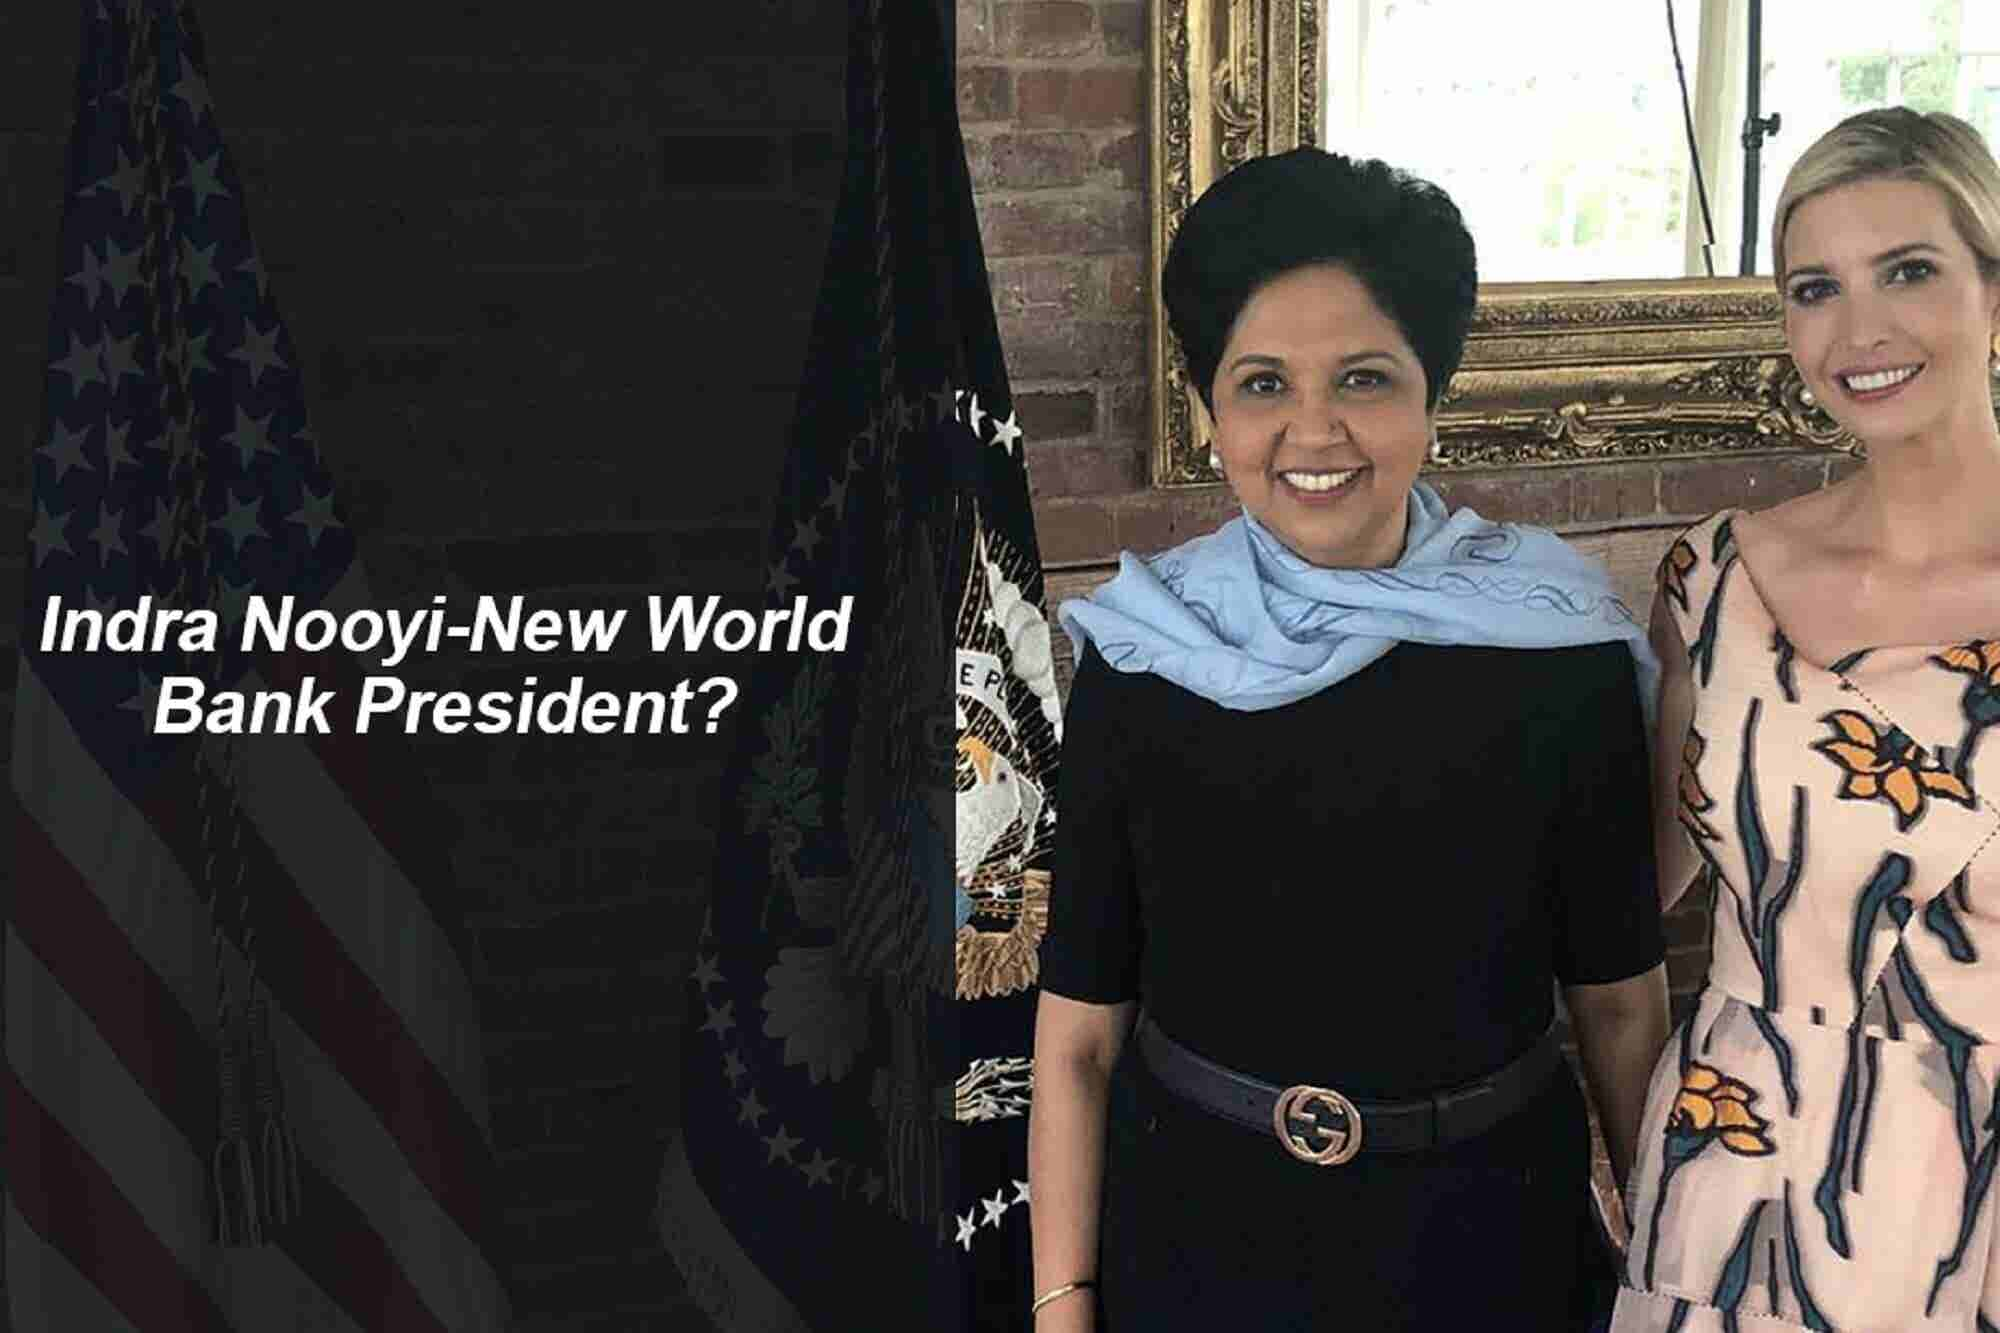 Beyond India: Indra Nooyi for World Bank President & Elon Musk's New F...